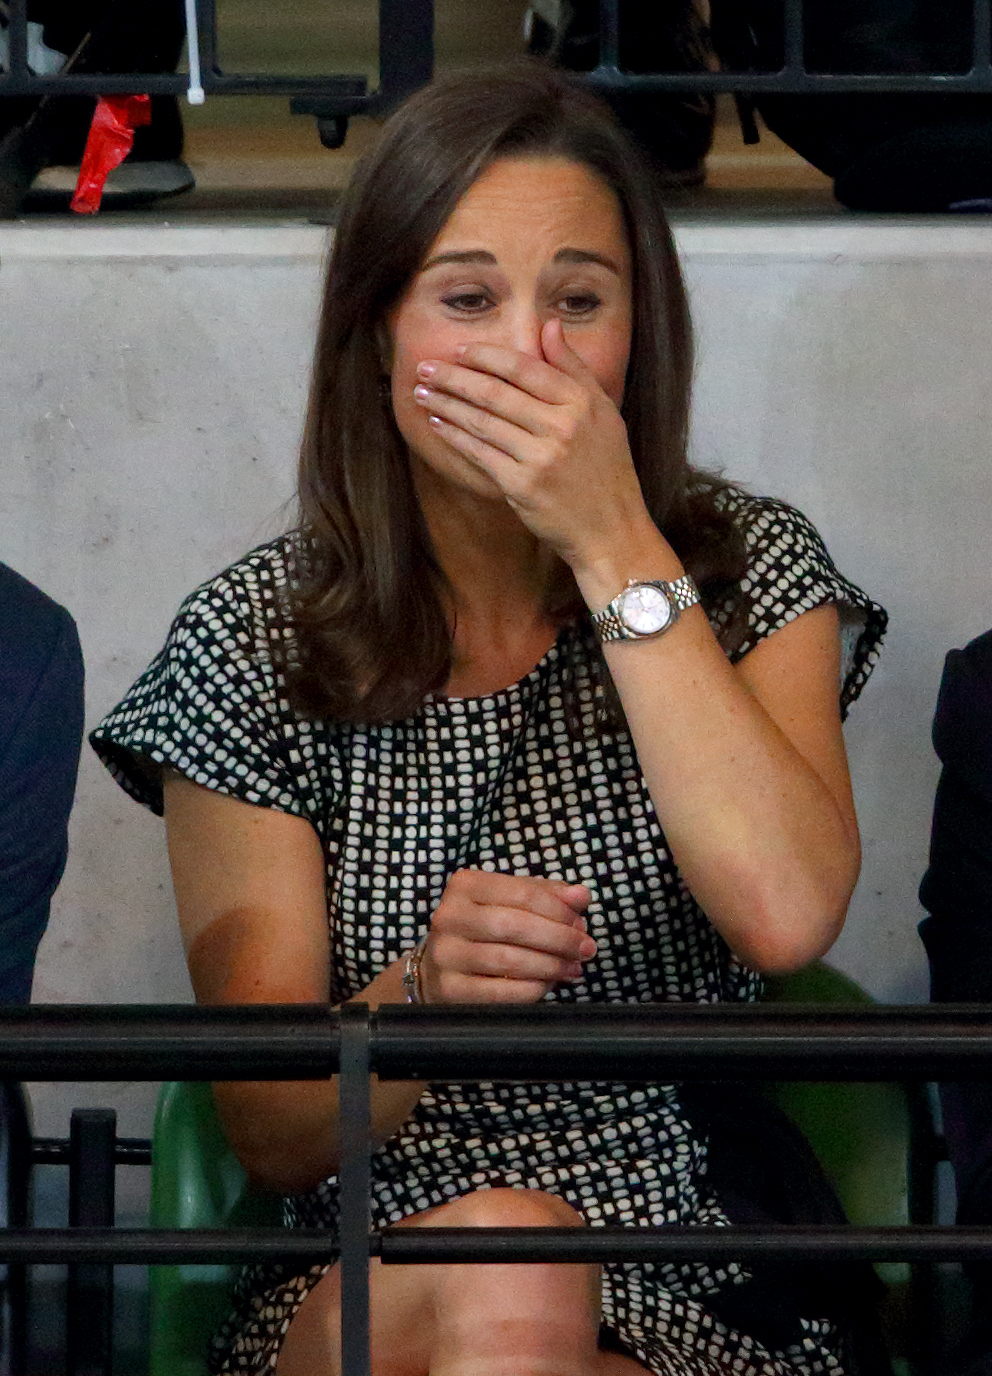 Pippa Middleton watches Prince Harry and Zara Phillips compete in a Wheelchair Rugby exhibition match in the Copper Box Arena during the Invictus Games